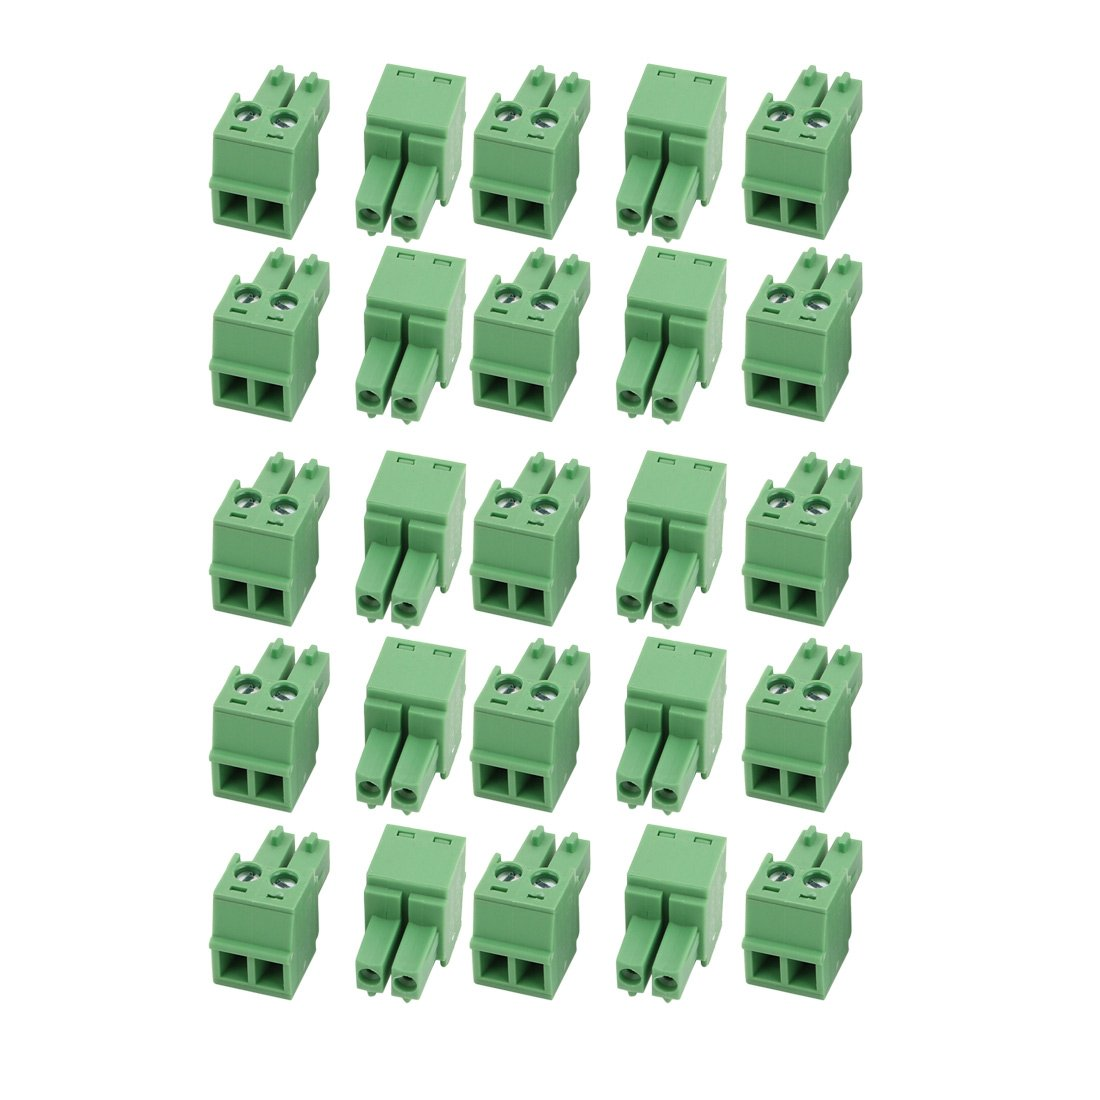 uxcell 25Pcs LC1 AC300V 8A 3.81mm Pitch 2P PCB Terminal Block Wire Connection